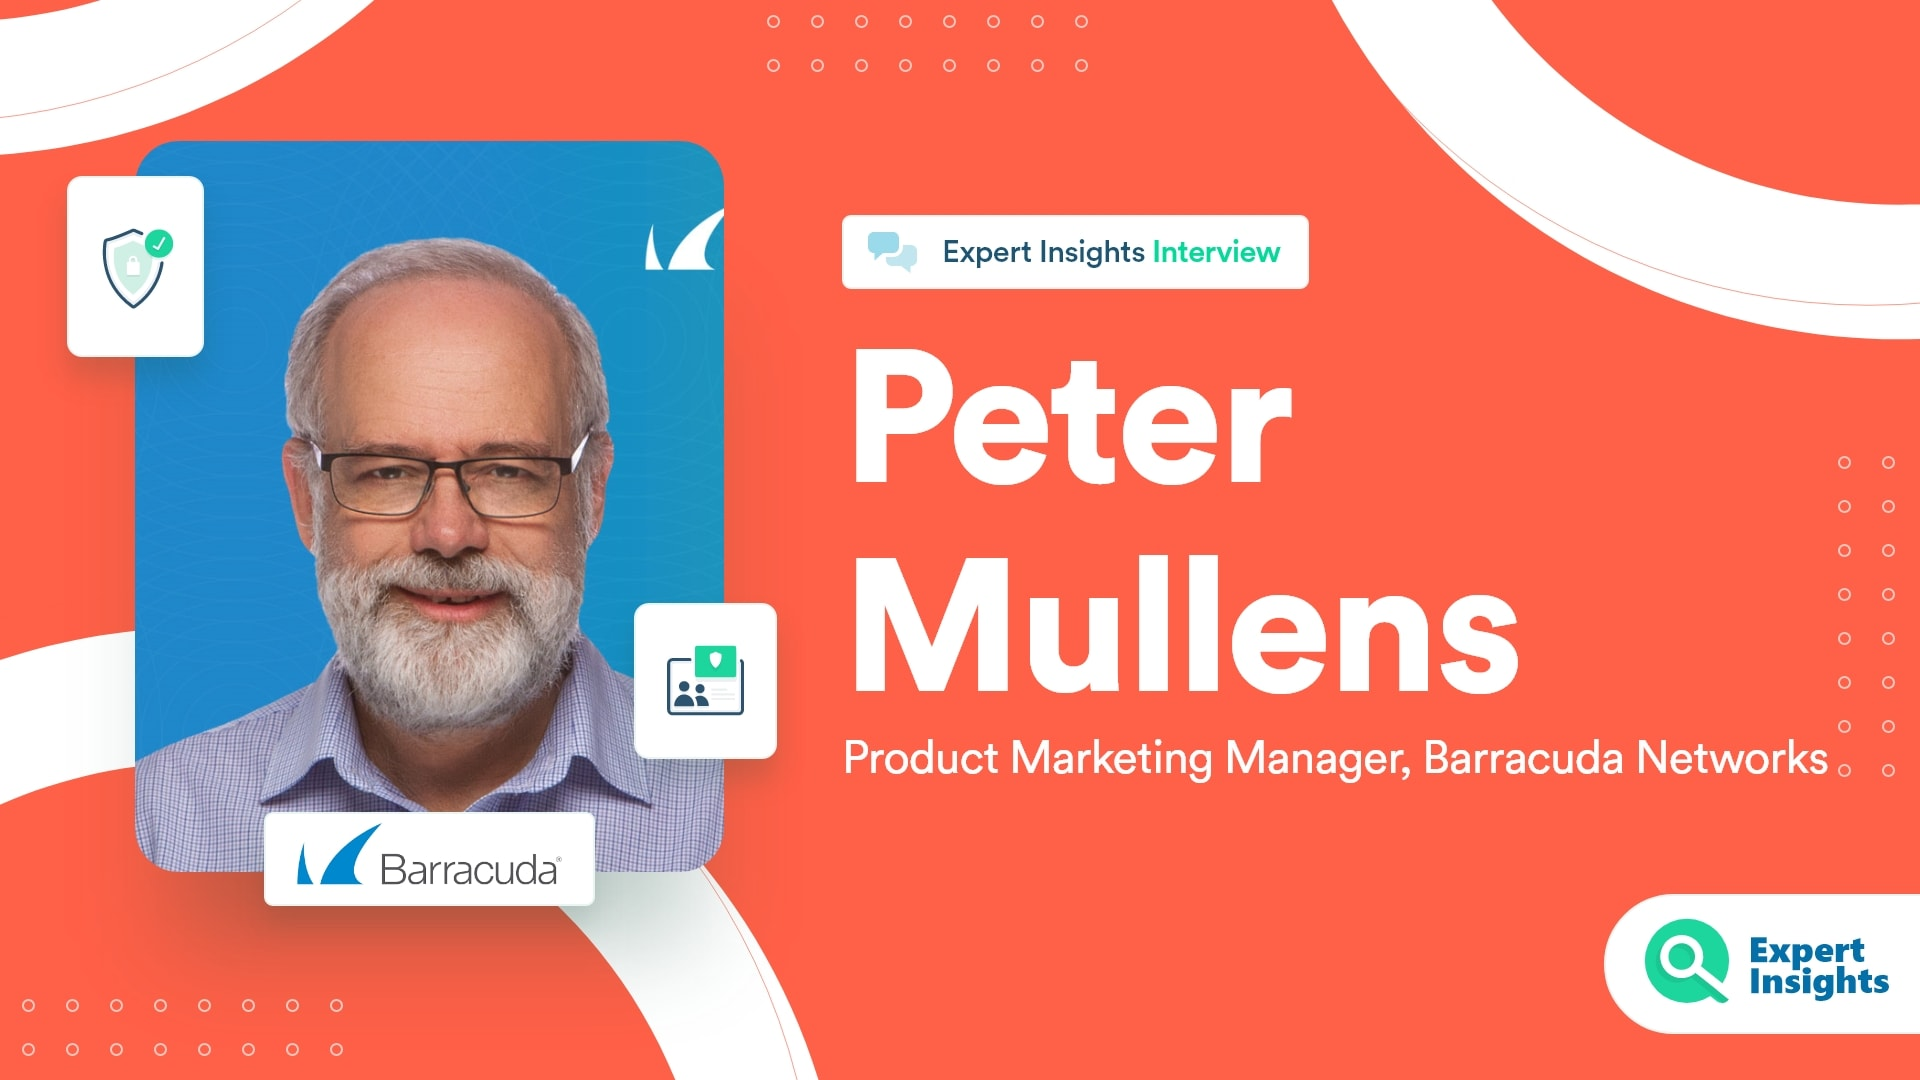 Expert Insights Interview With Peter Mullens Of Barracuda